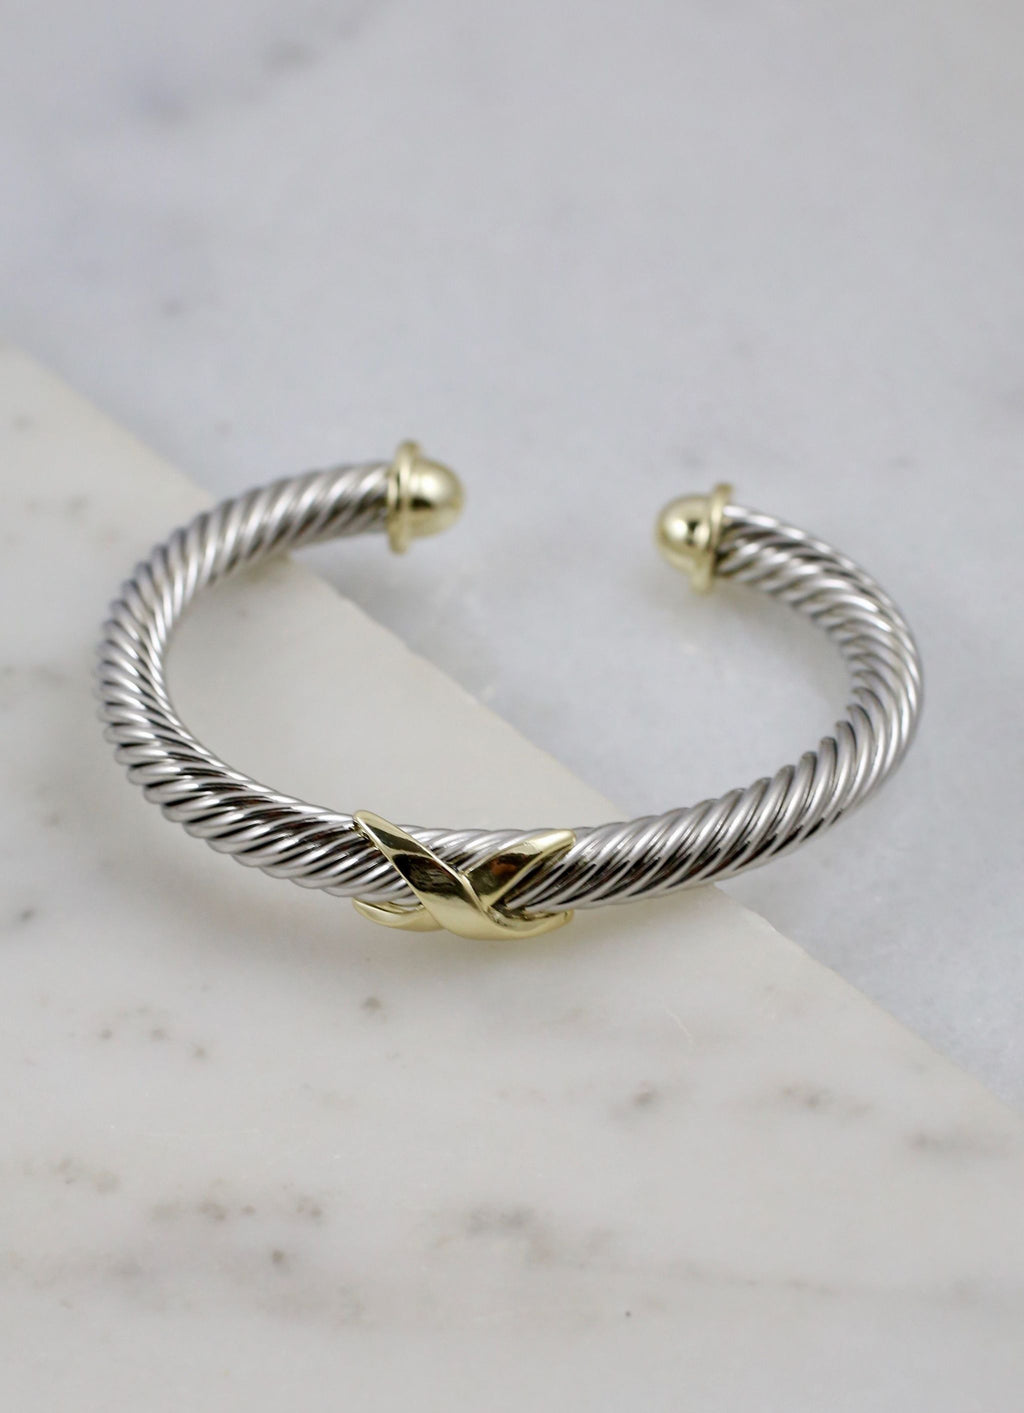 Knoxy Two Tone Cable Bracelet With X Accent Silver - Caroline Hill